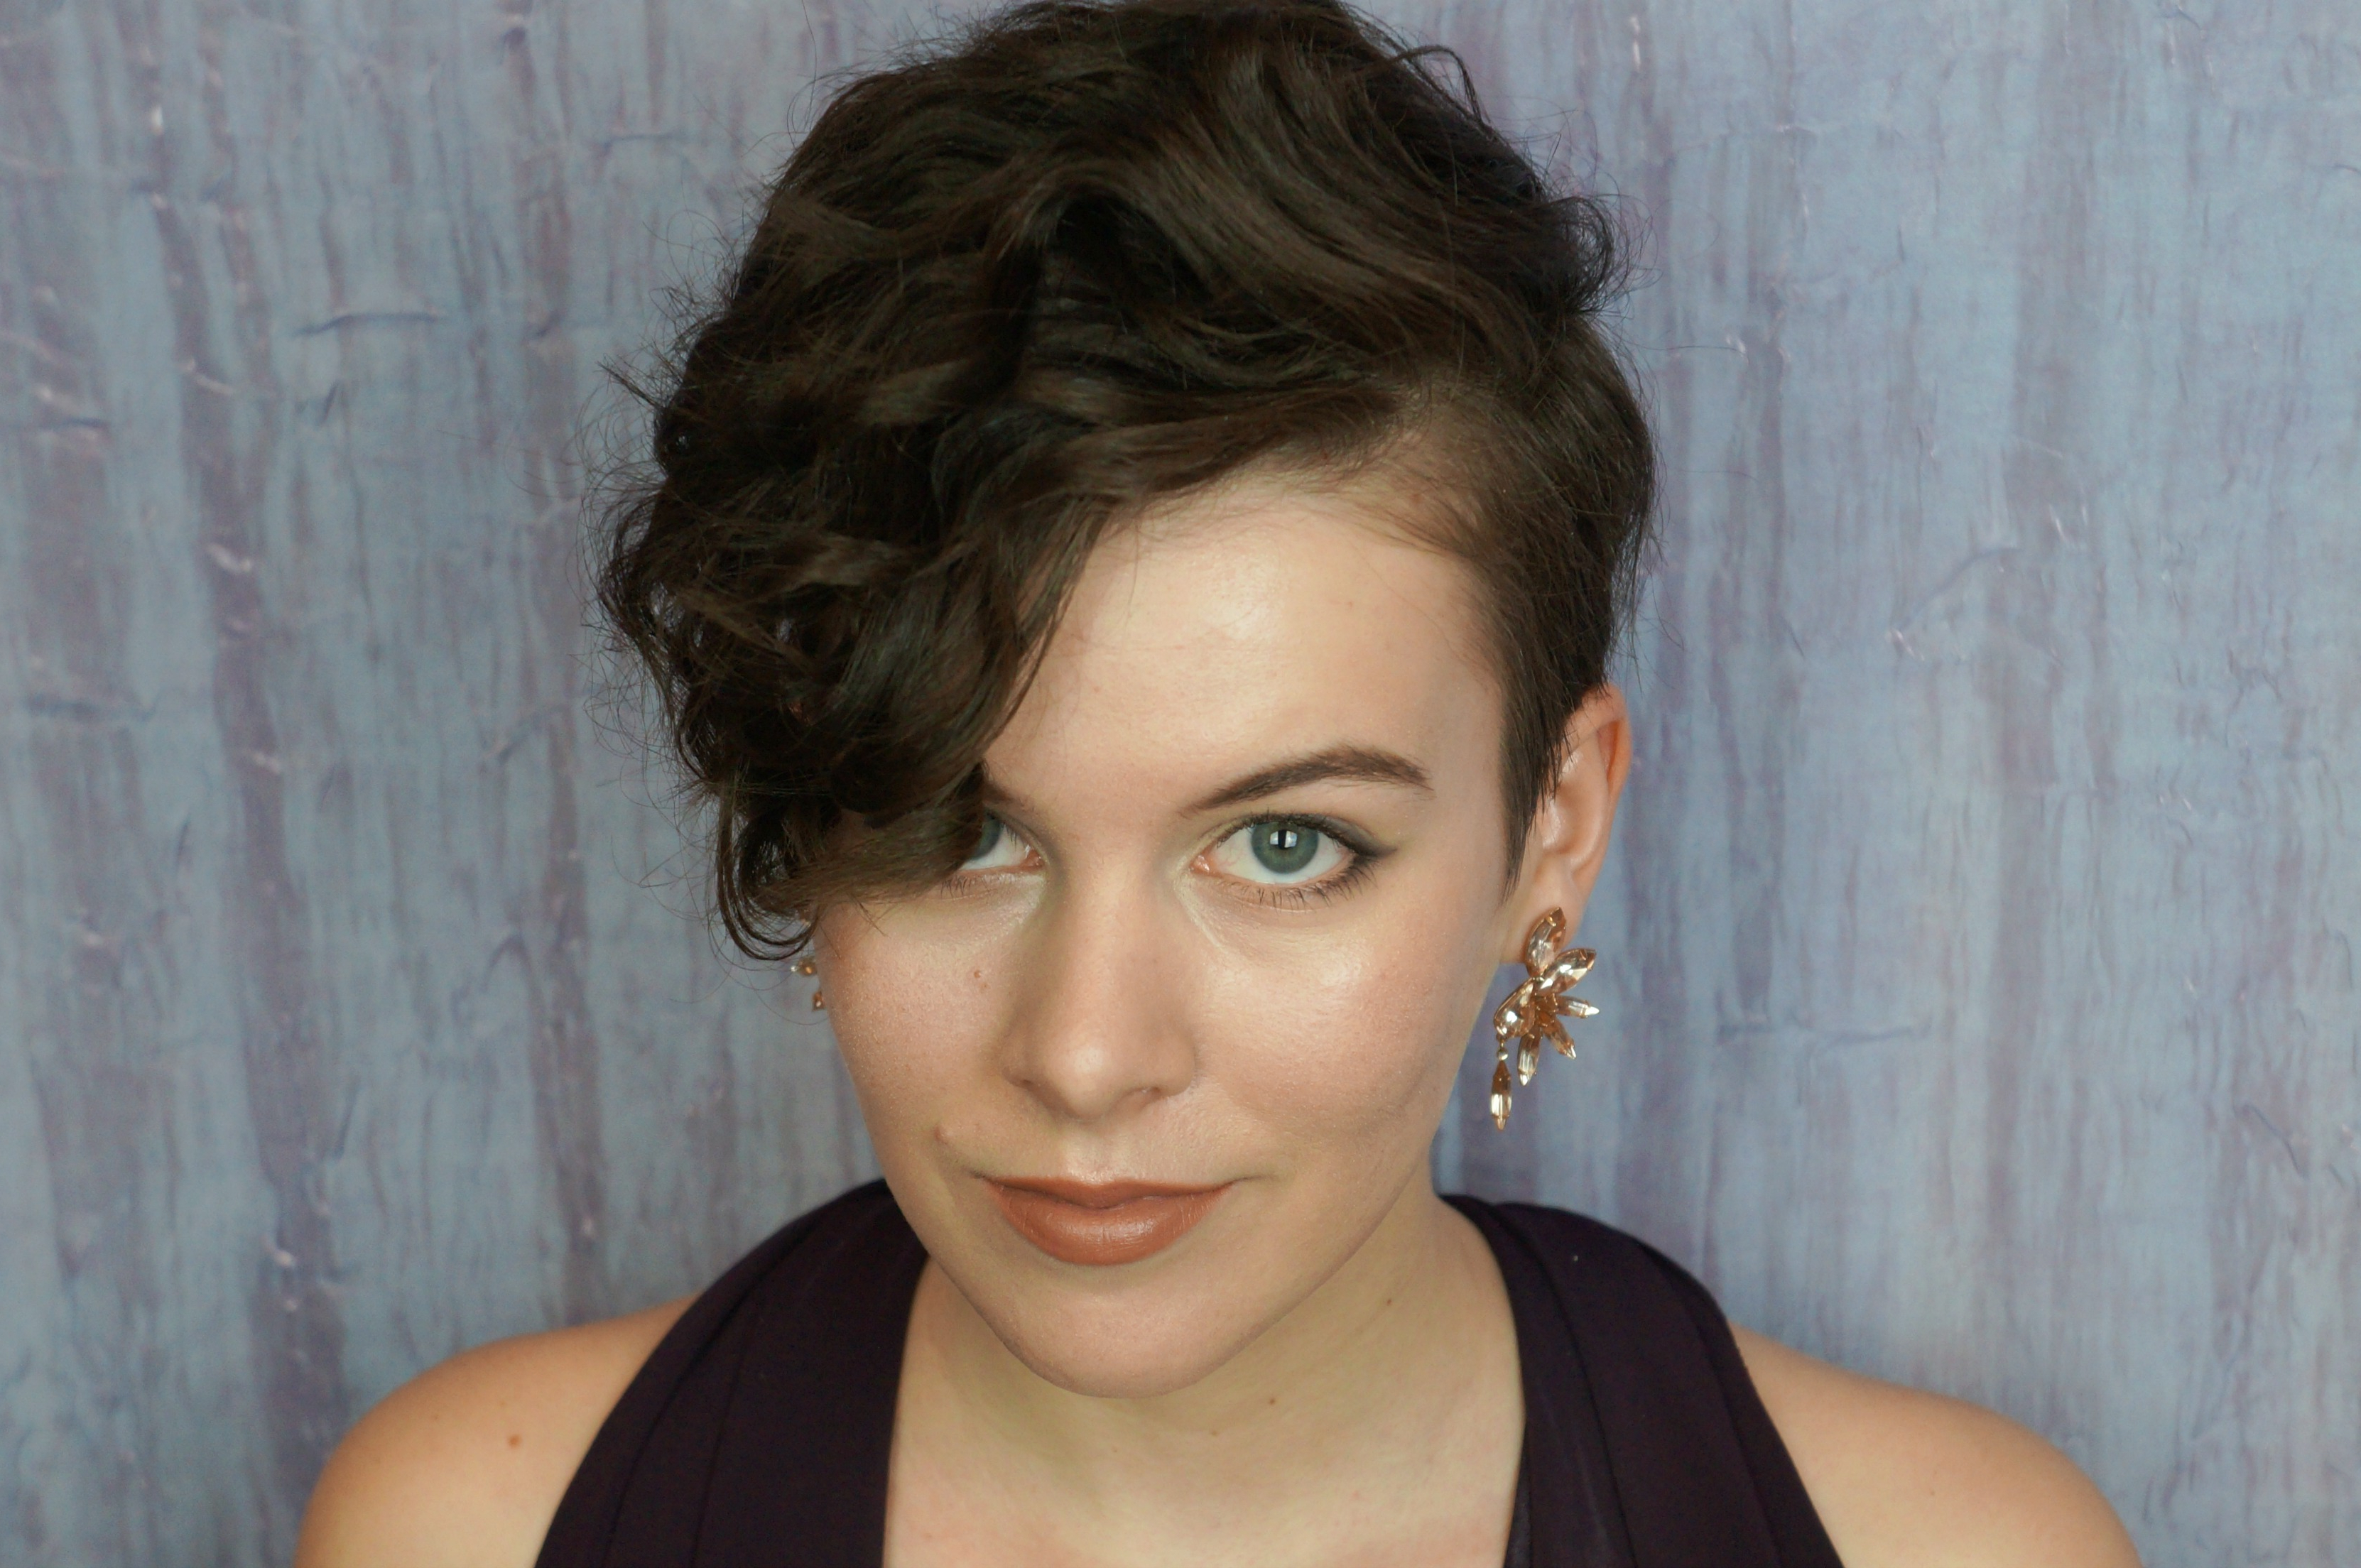 4 Short Hairstyles For Prom That Prove Pixie Cuts Can Be Extremely Glam Within Special Occasion Short Hairstyles (View 13 of 25)